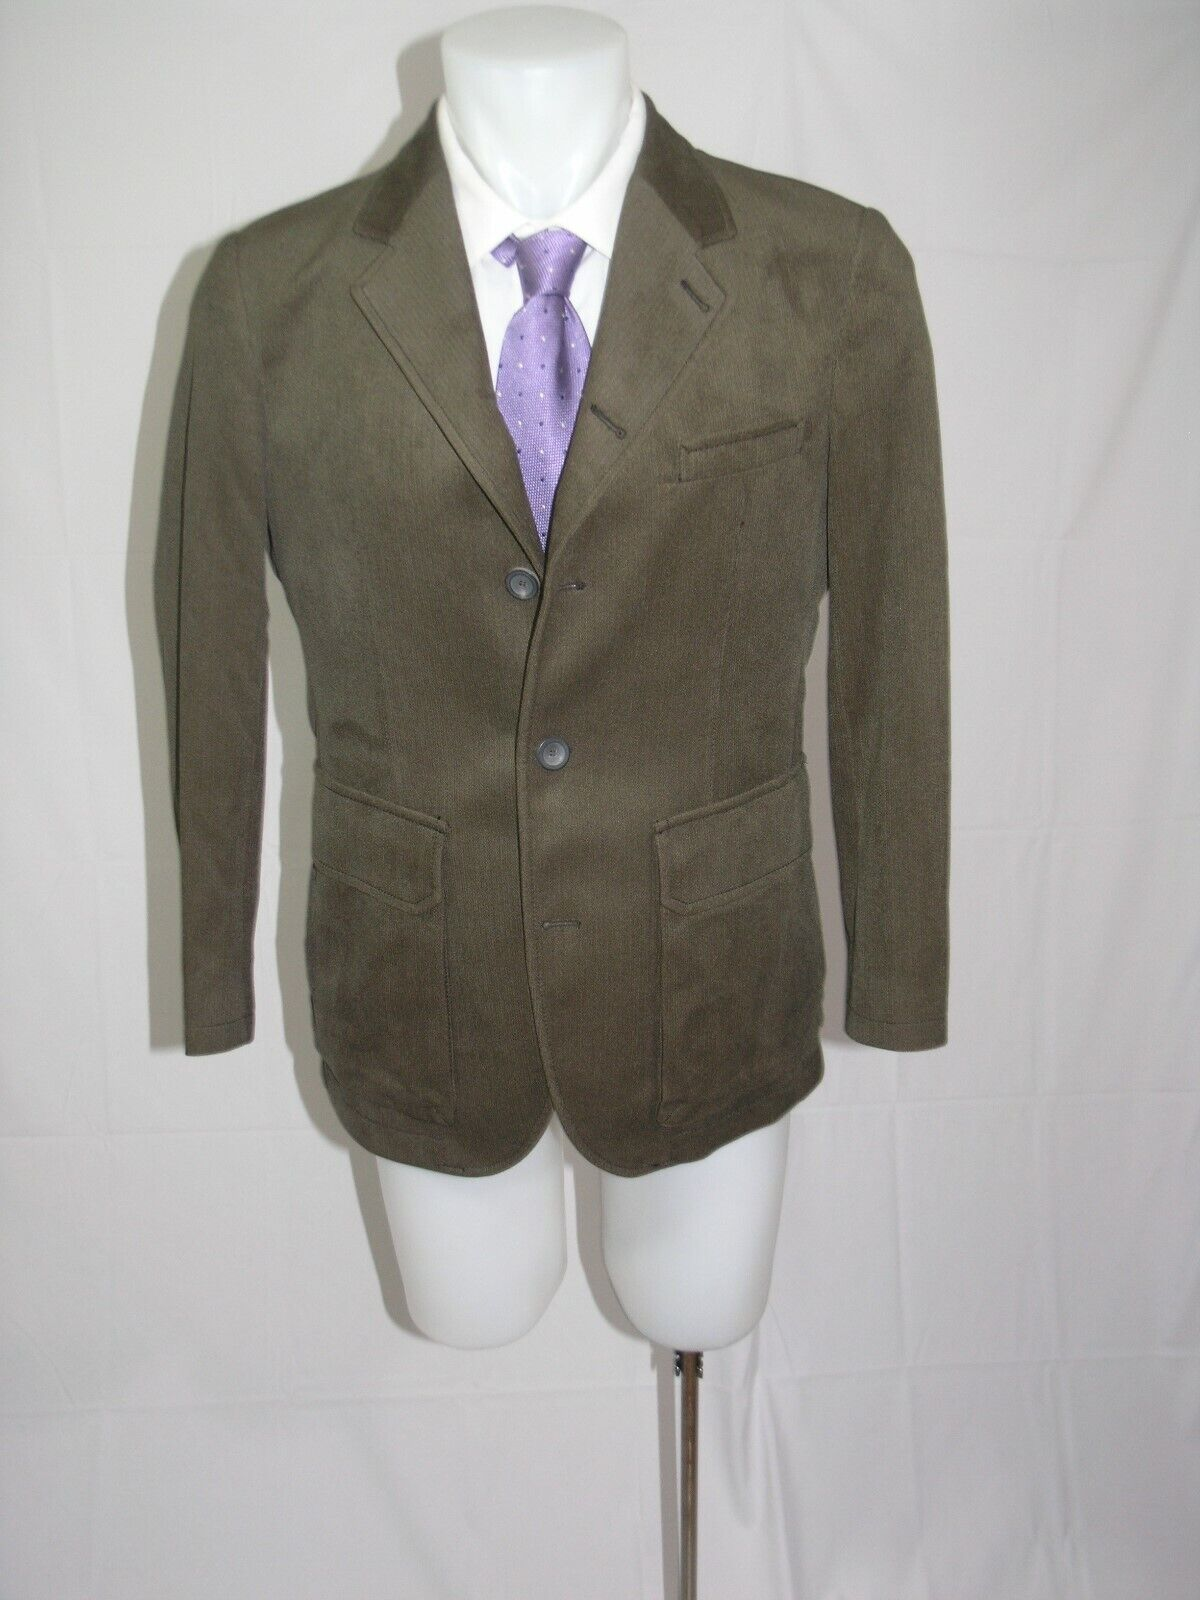 Emporio Armani Grünline braun Herringbone Four Roll Three Norfolk Blazer 40R